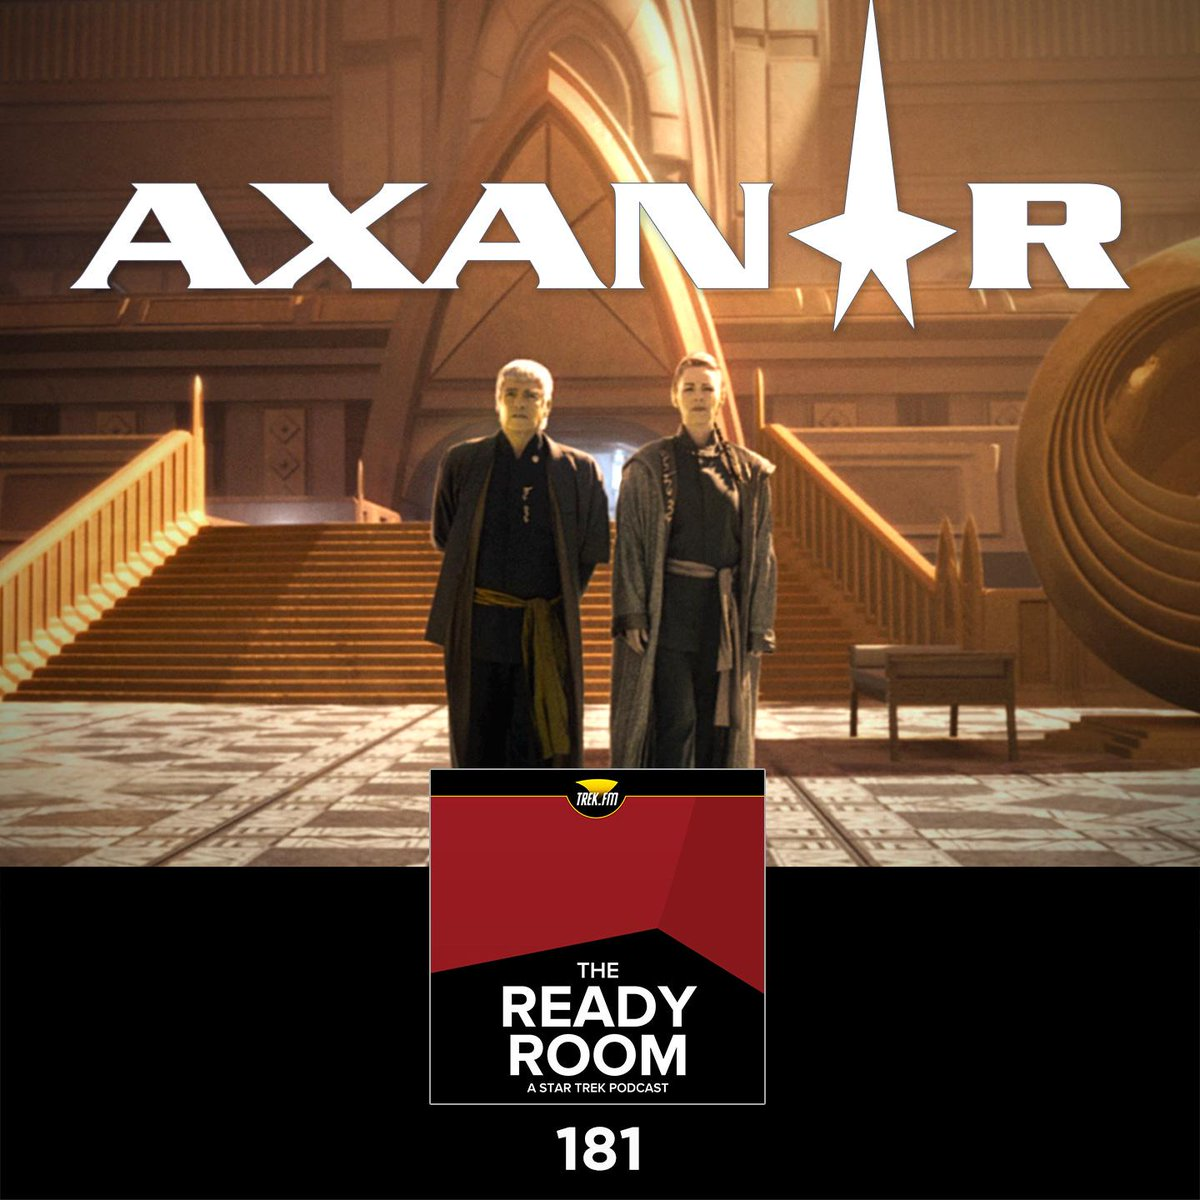 New Ready Room! @AlecPeters @BurnettRM + @normanlao join me to talk @StarTrekAxanar #podcast http://t.co/X42bDbMtH7 http://t.co/jjDYlKTdQP